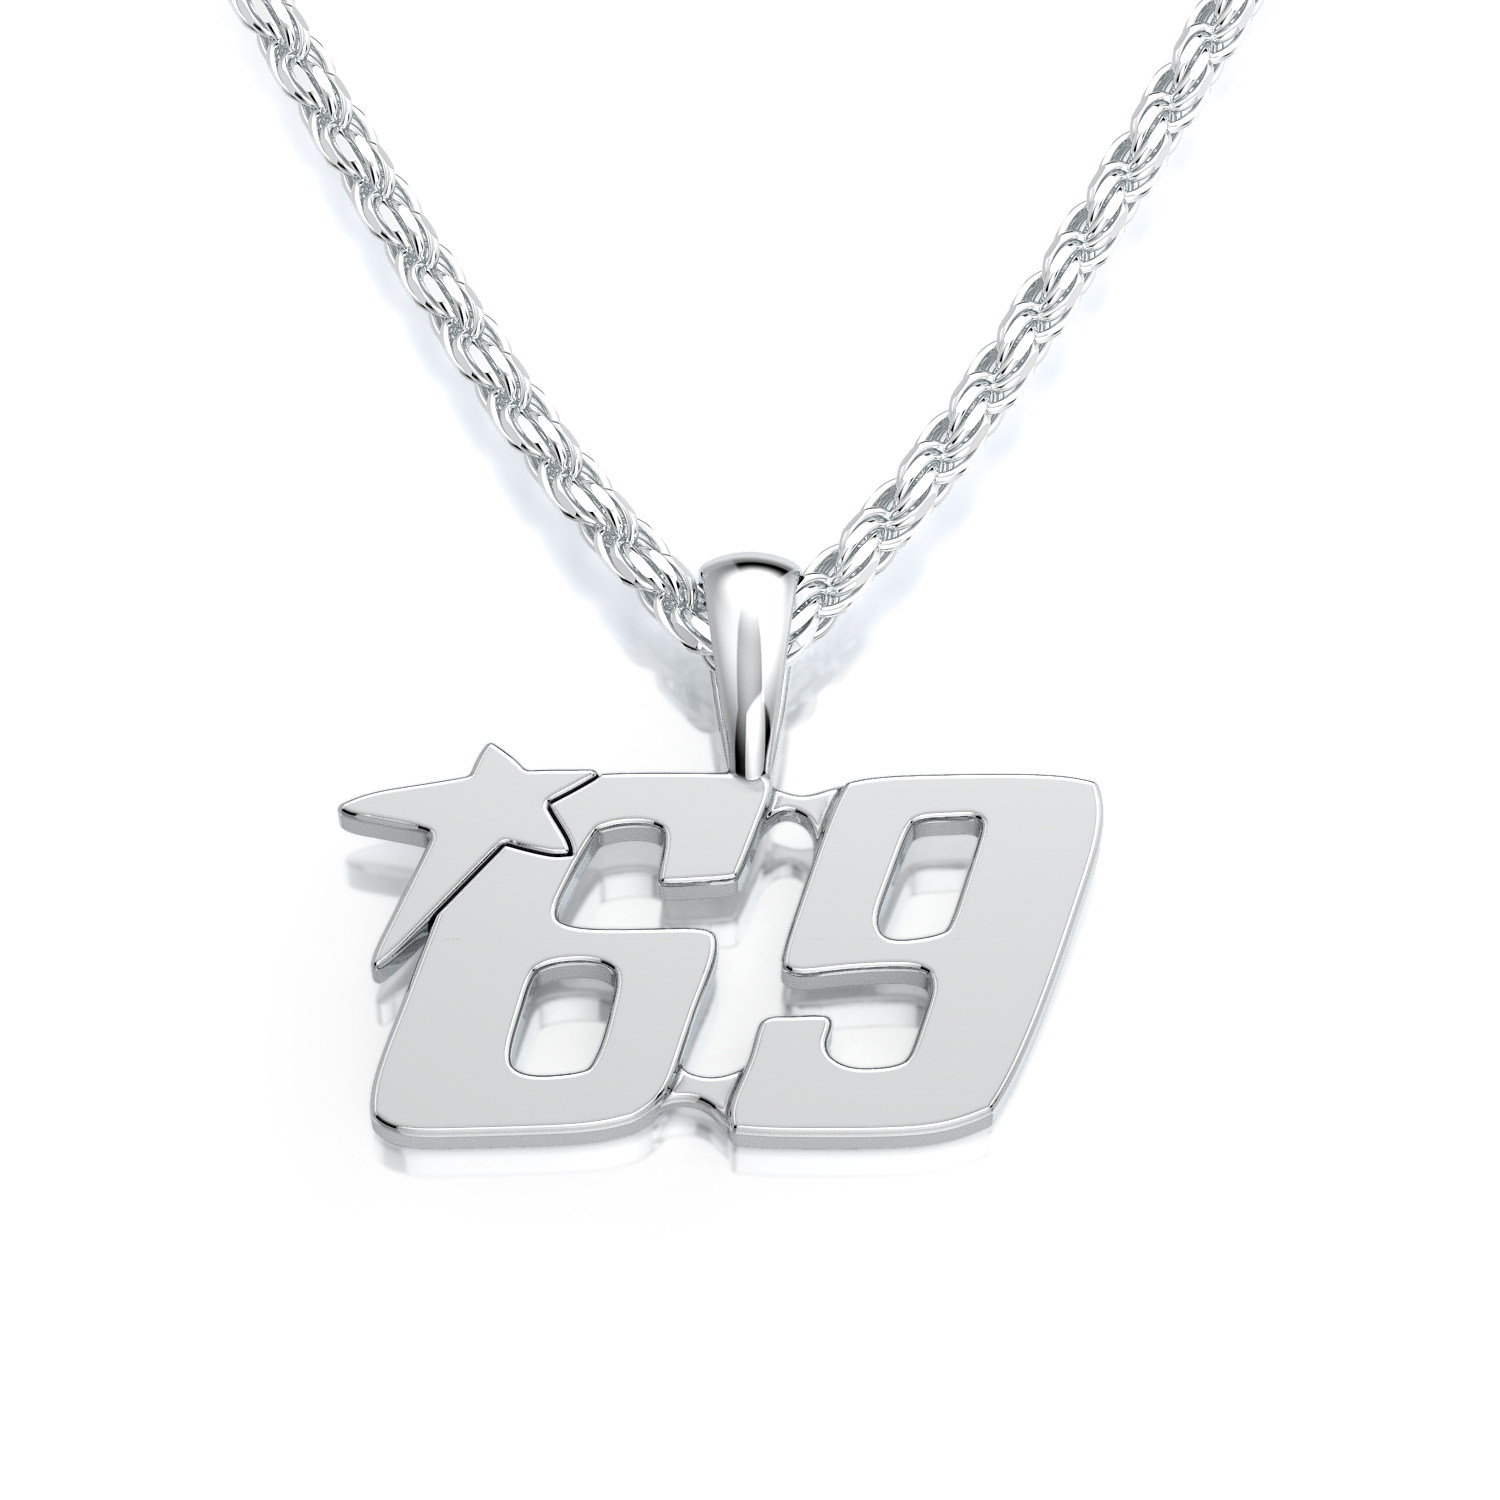 Racer Series Ladies Racing Number Pendant product image